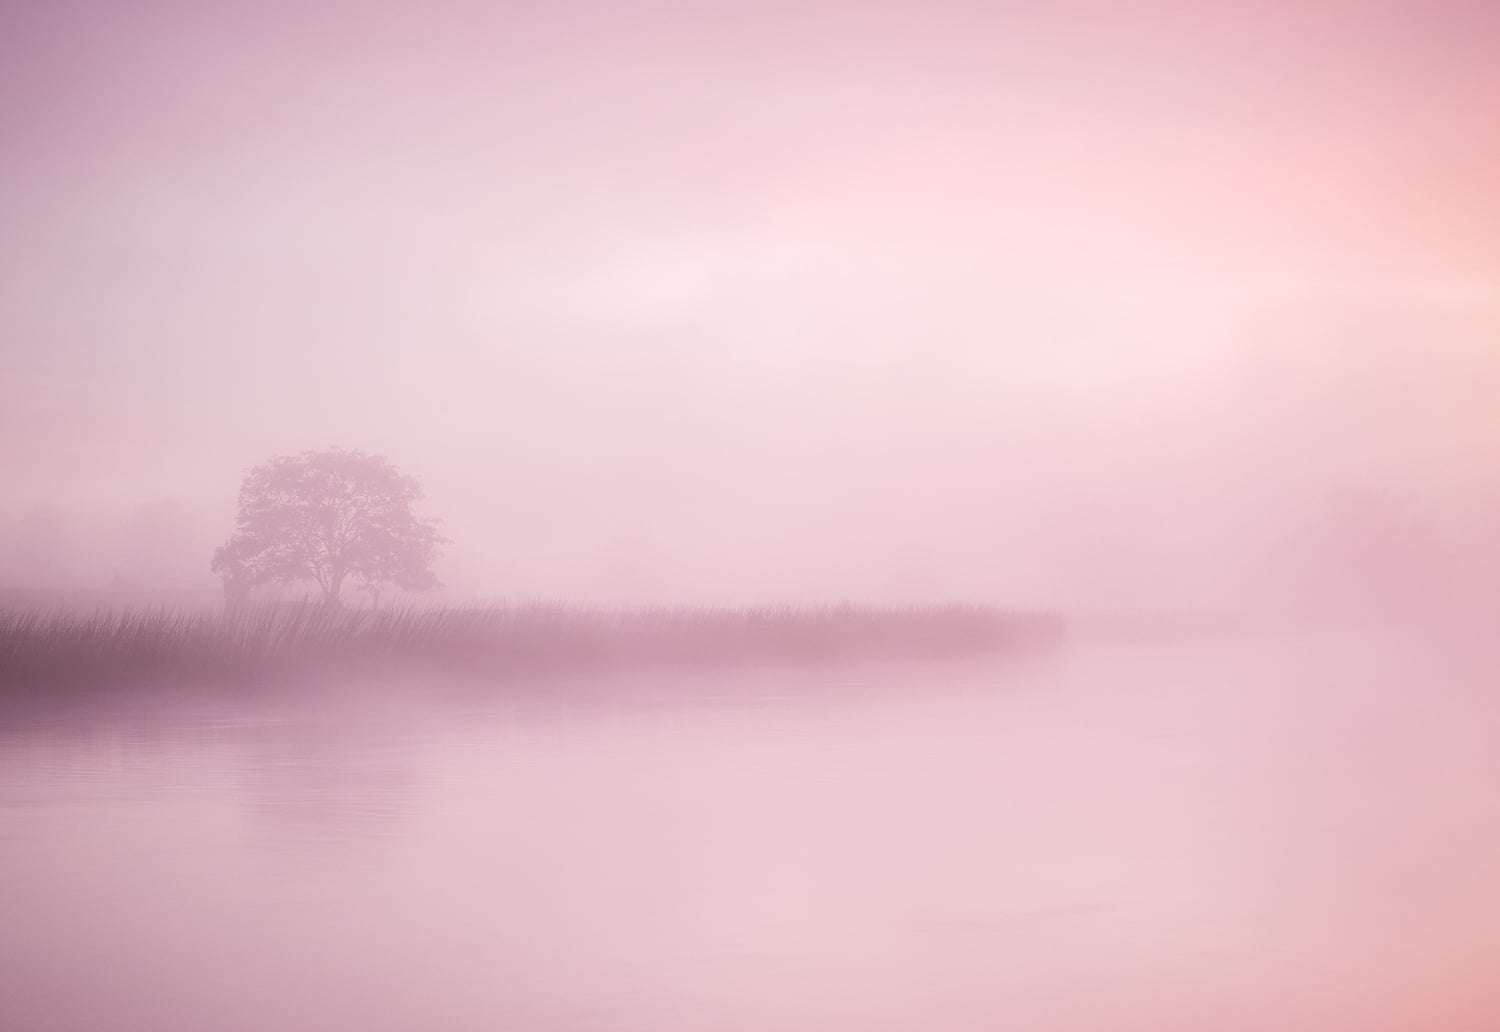 Summer mist - Co Meath